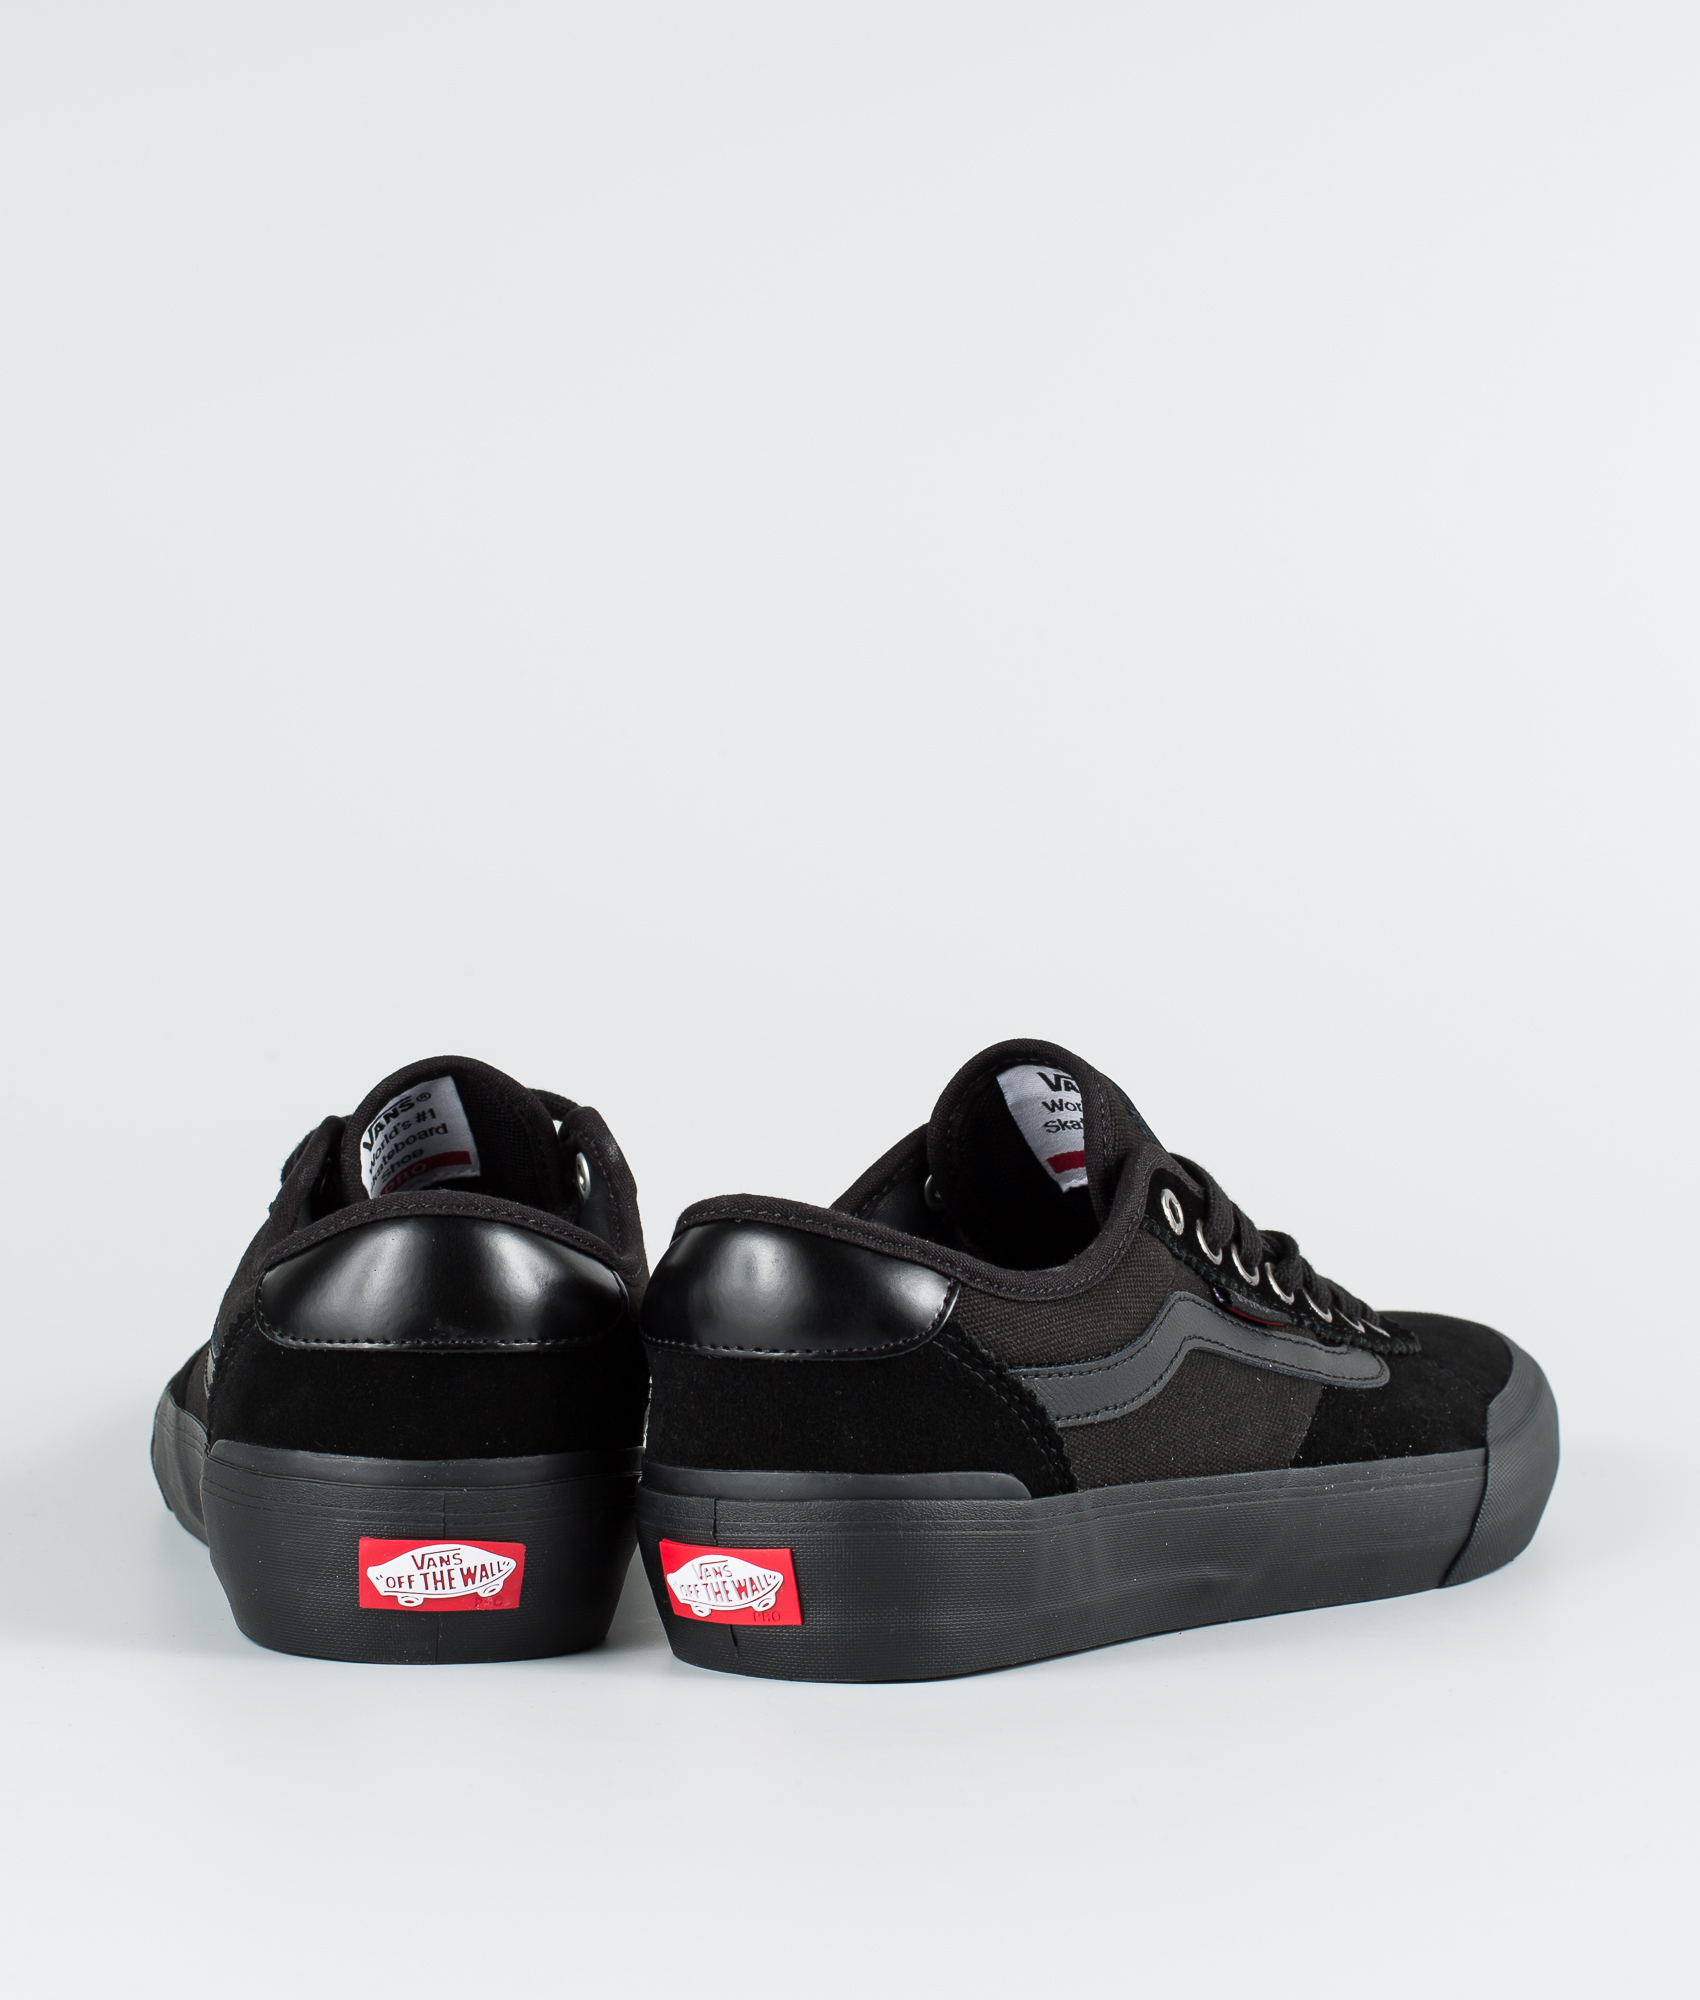 Vans Chima Pro SchuhesuedeBlackout 2 2 Chima SchuhesuedeBlackout Vans Vans Pro rCoedxB